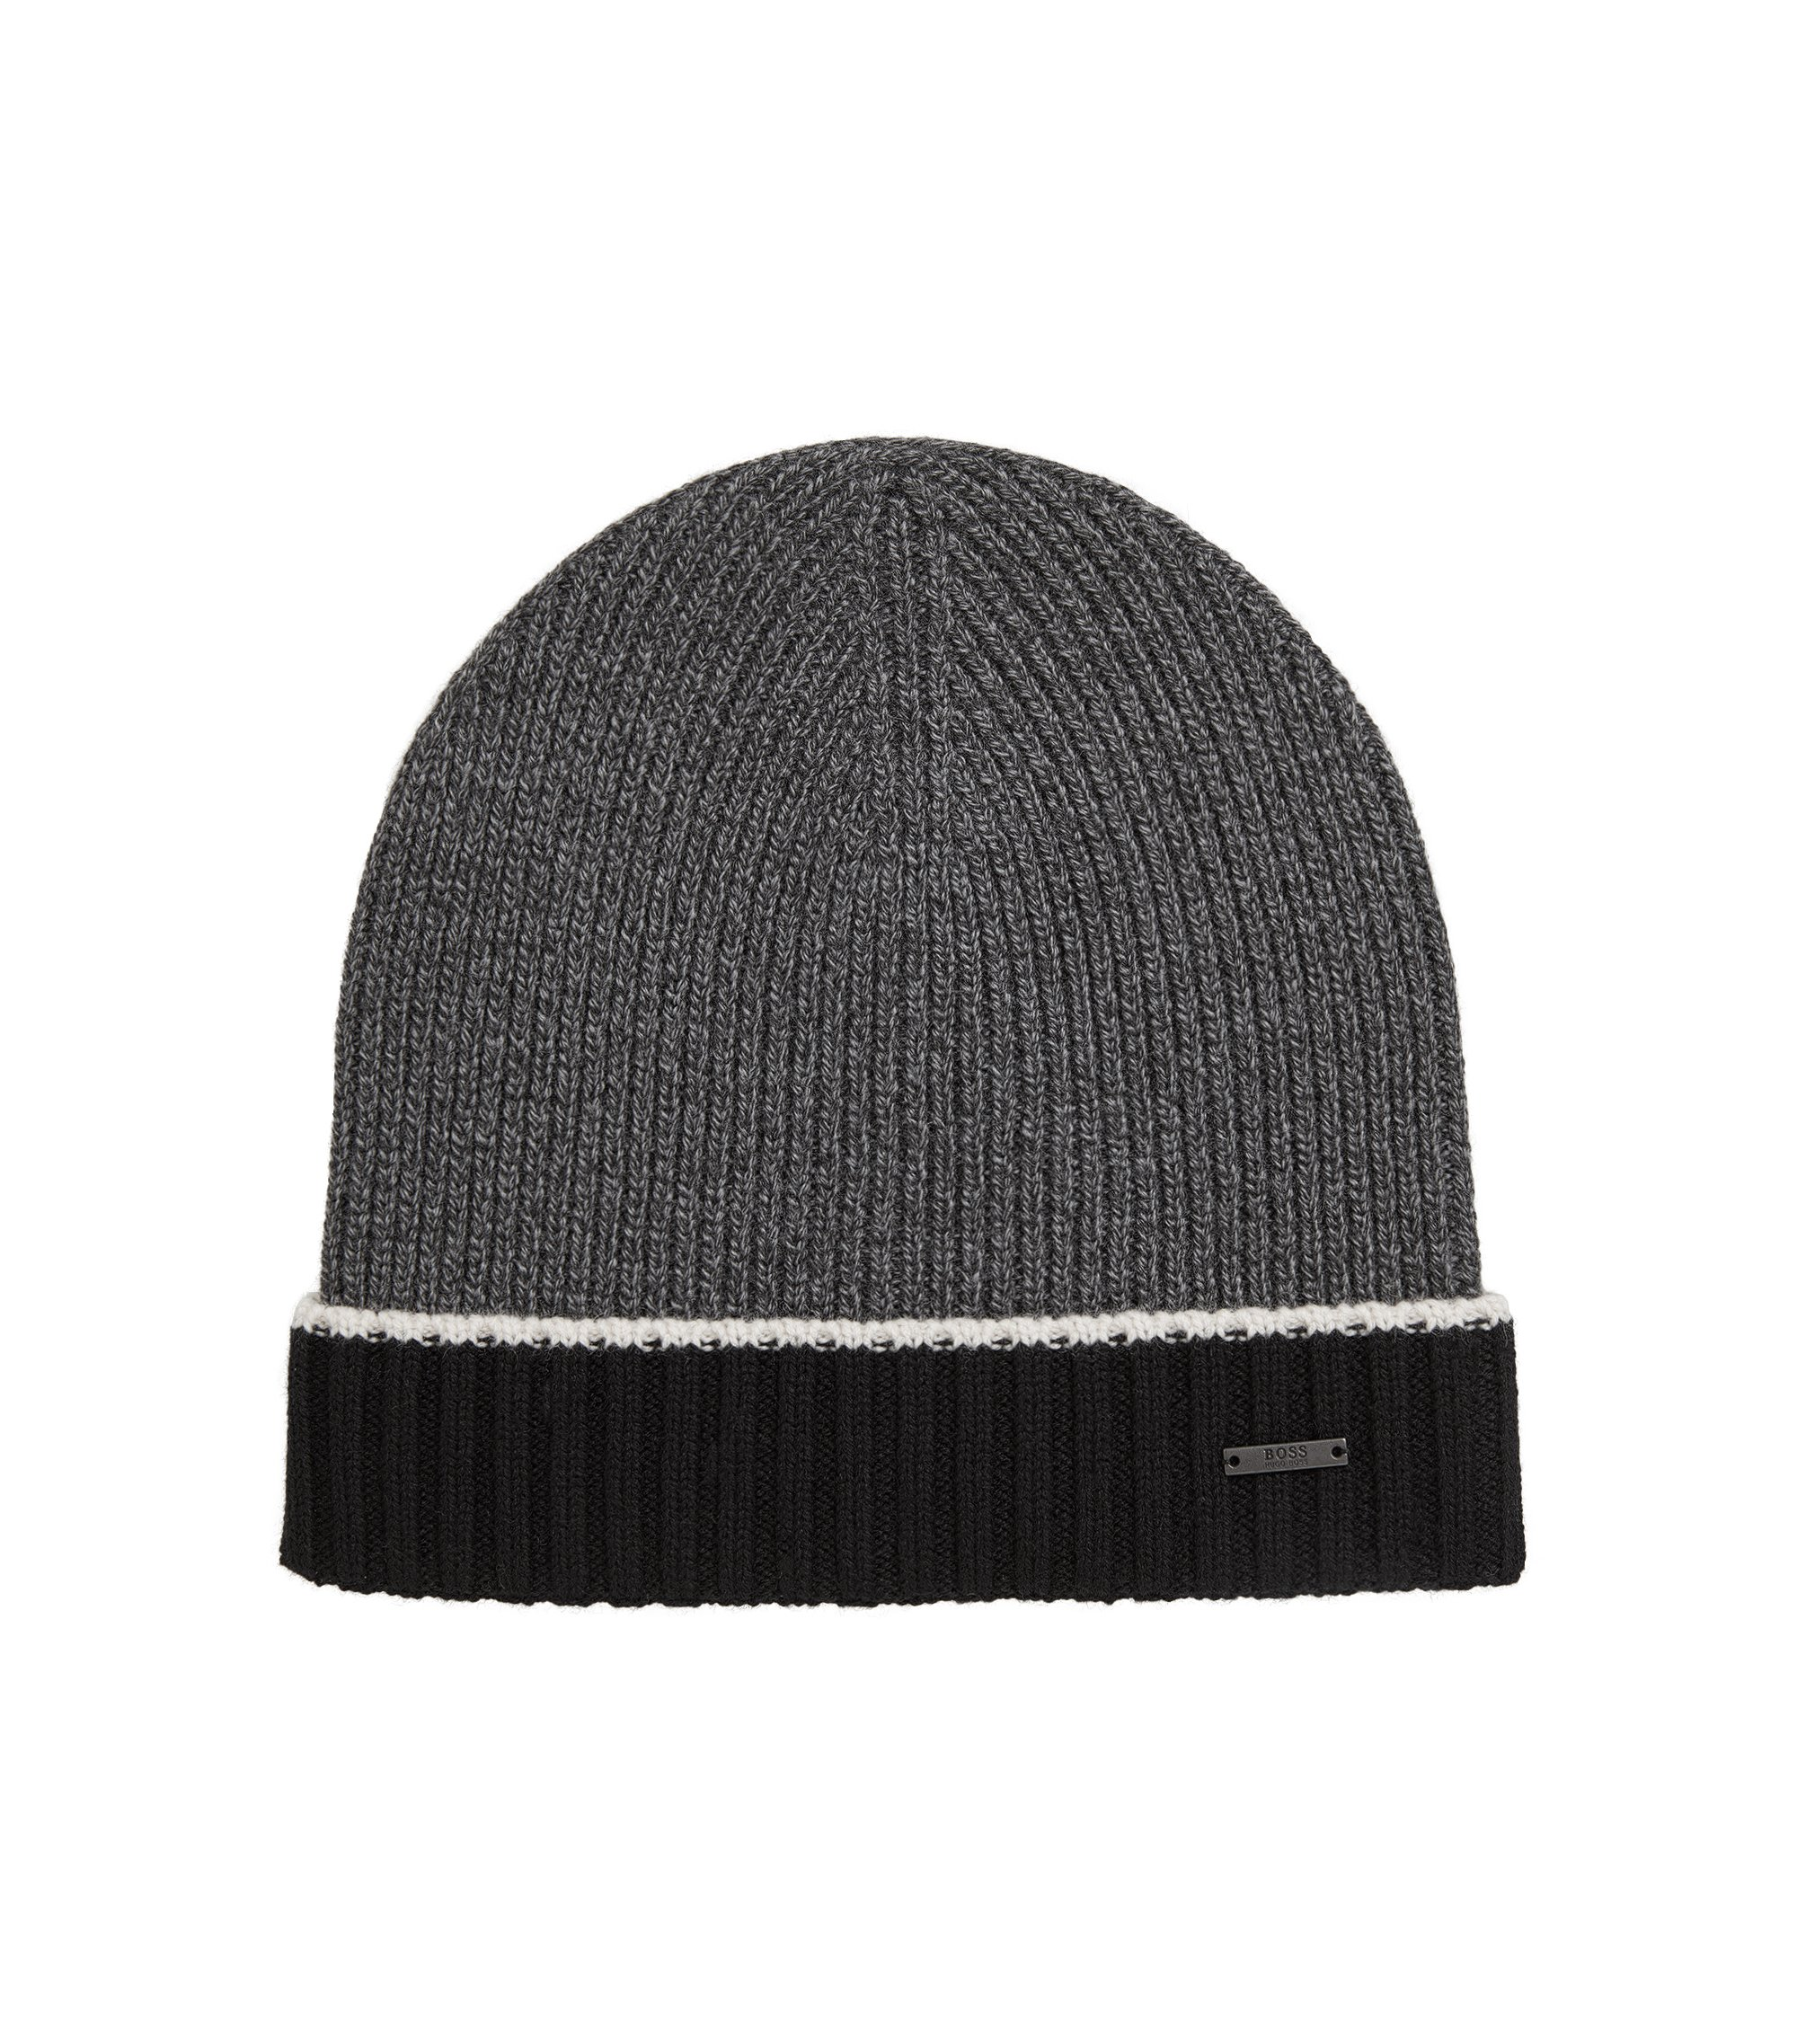 Mouliné beanie hat in virgin wool, Black